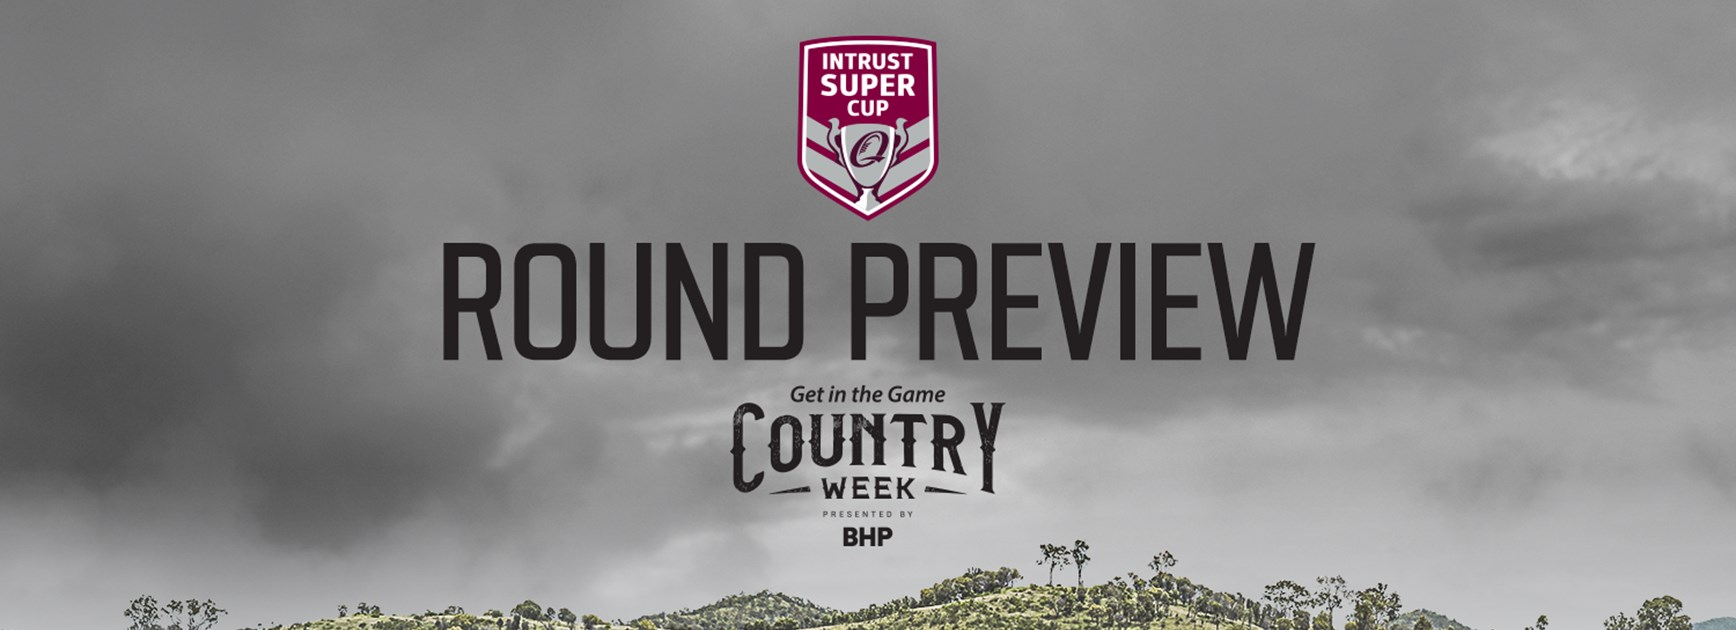 Intrust Super Cup Round 18 preview